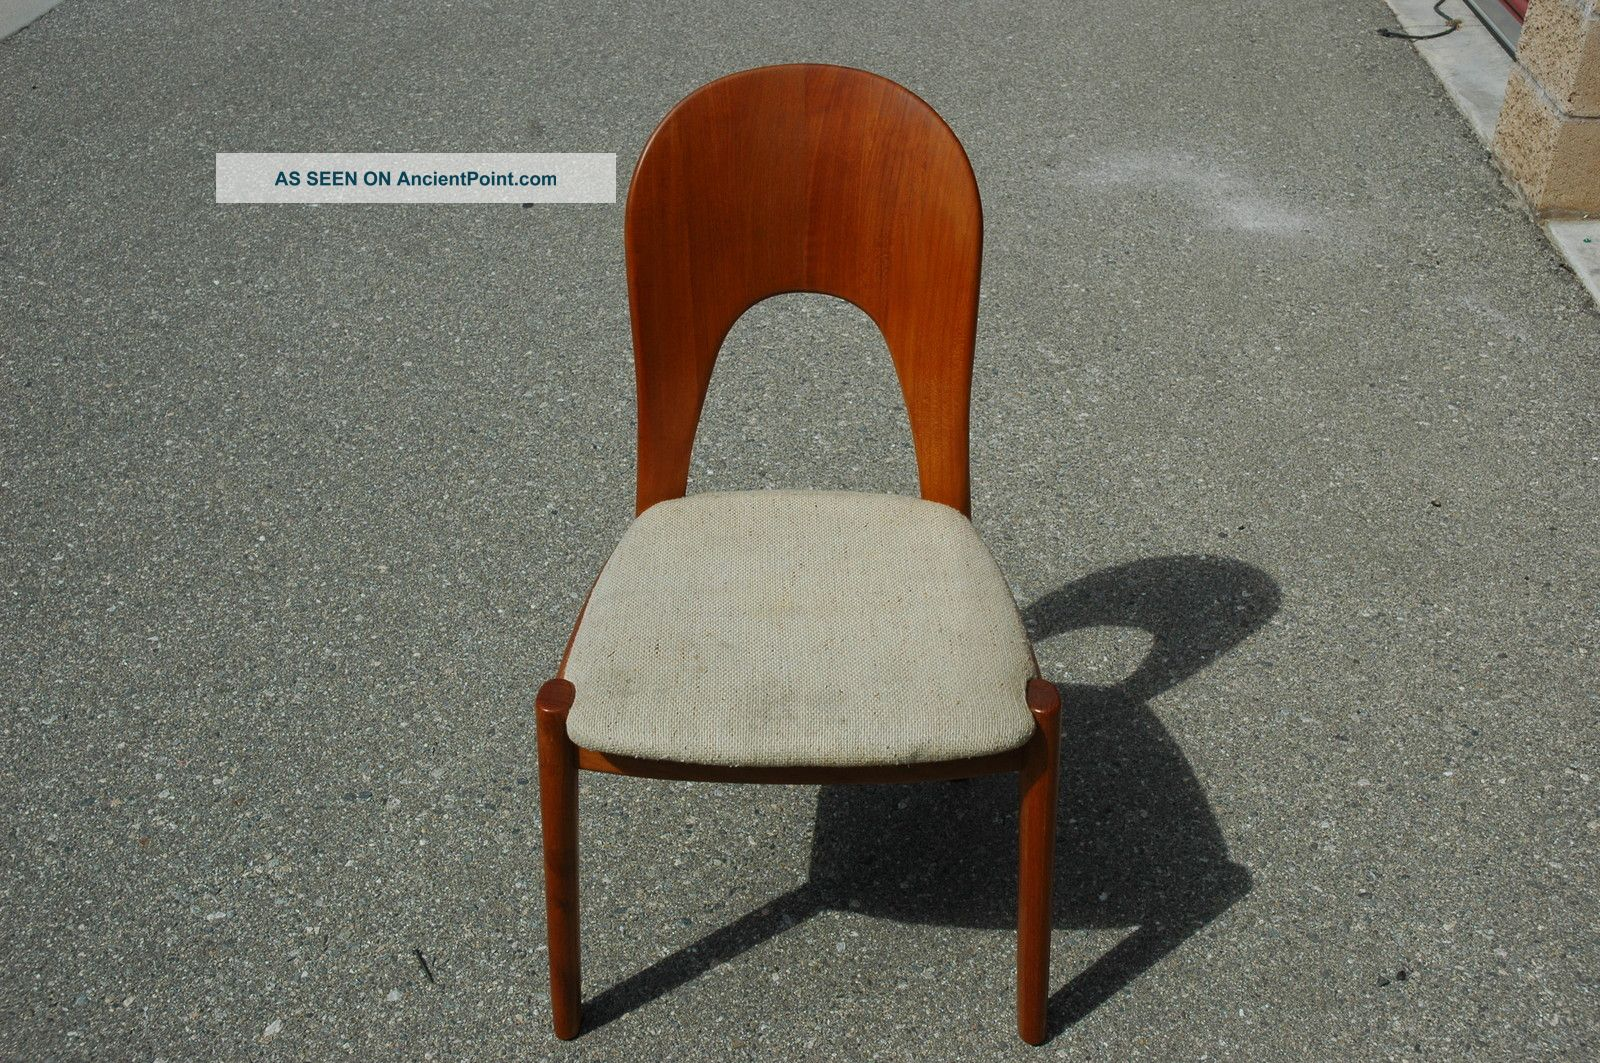 Vintage Mid Century Danish Modern Koefoeds Hornslet Chair Post-1950 photo